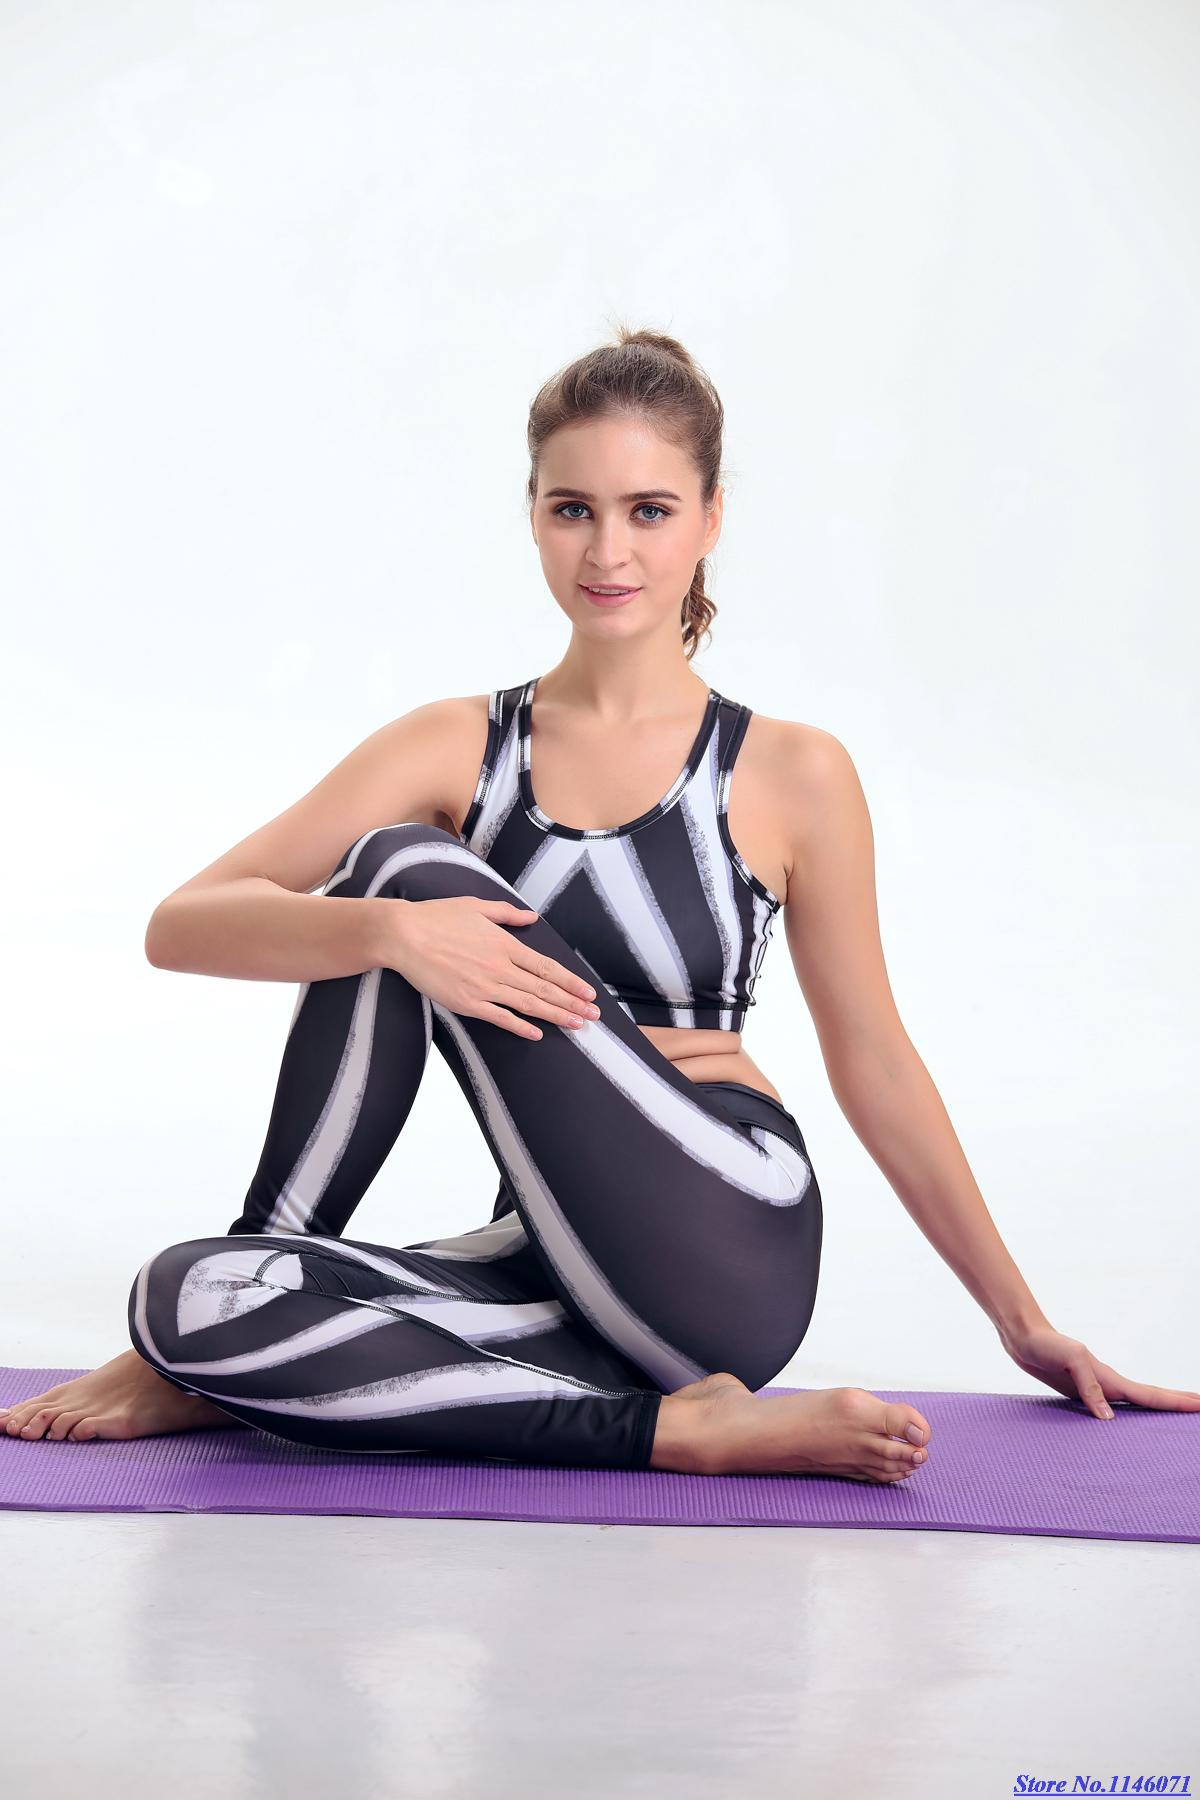 New Zebra Yoga Set Black and White Stripe Sportswear Women Print tracksuit  Female Fitness gym outfit tight-fitting Top Grade 6d96ddca6c0f